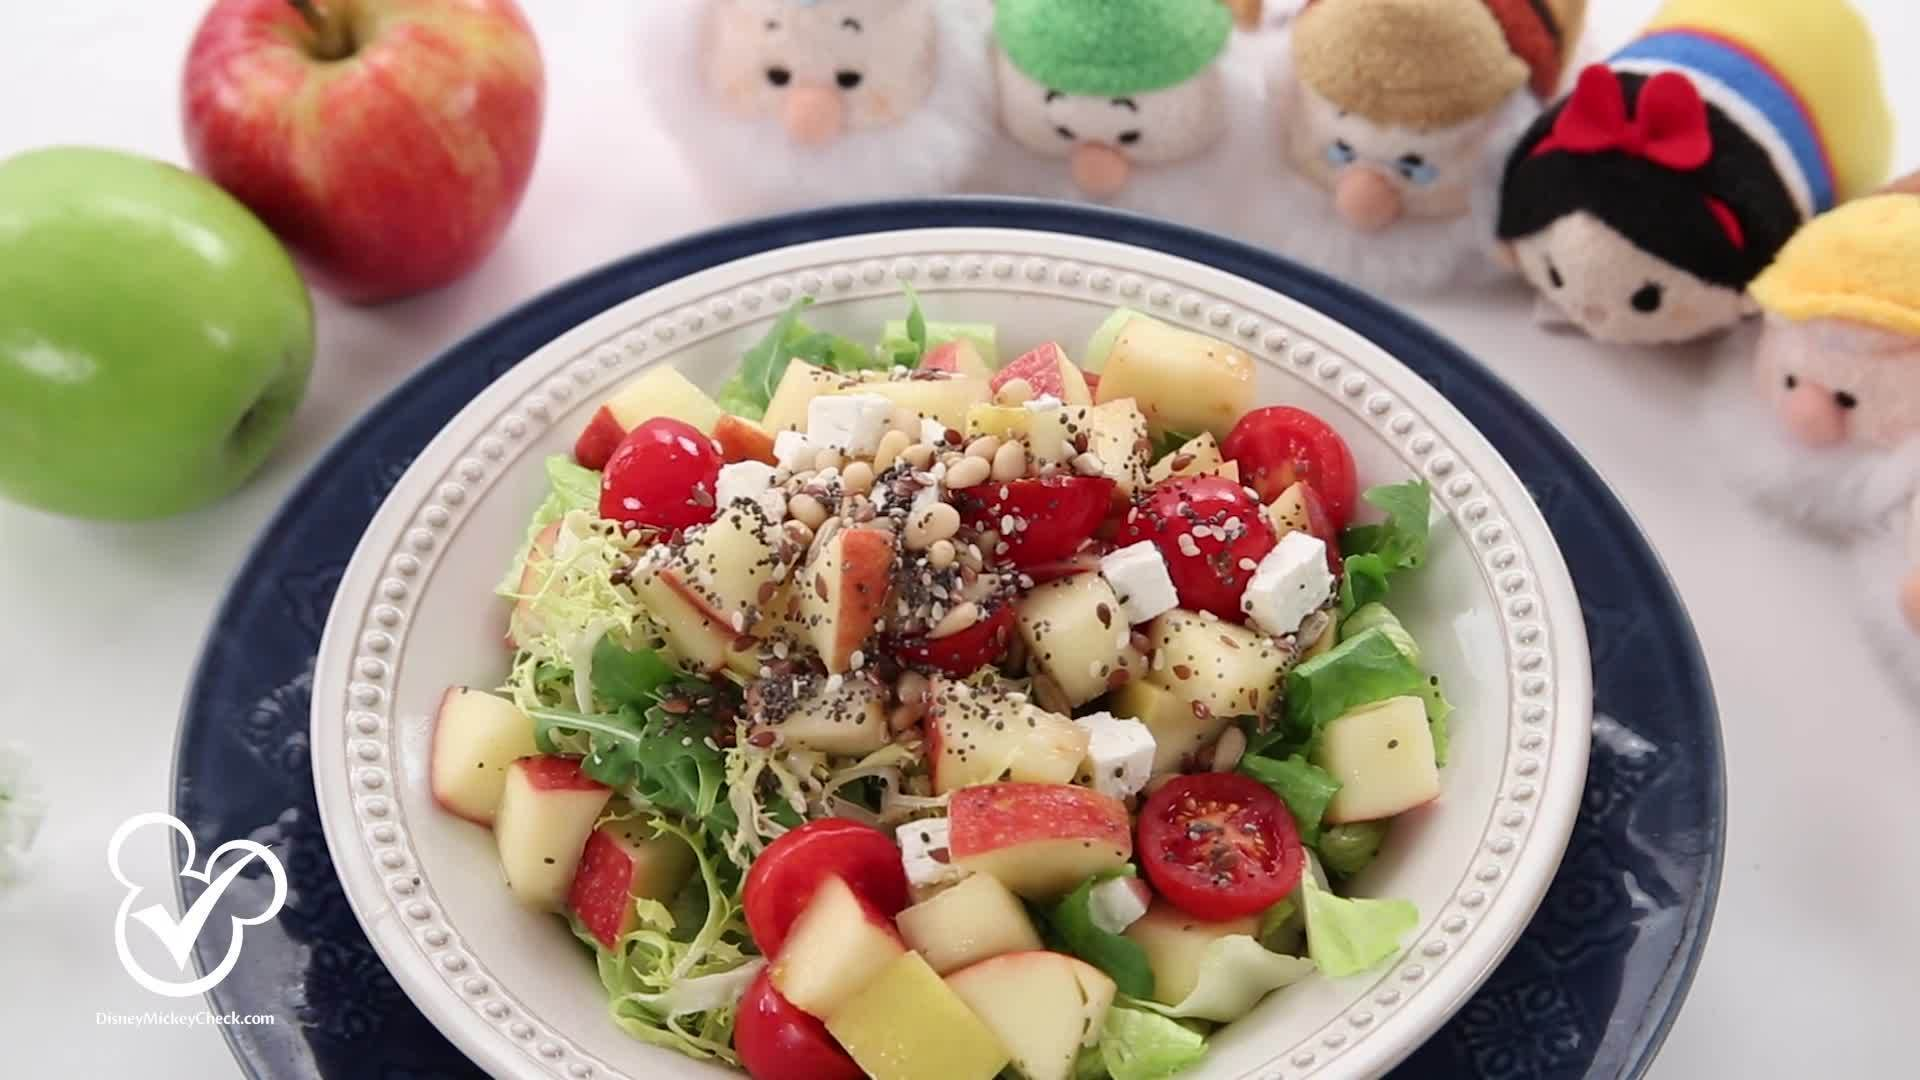 Live Healthier: Snow White's Enchanted Apple Salad